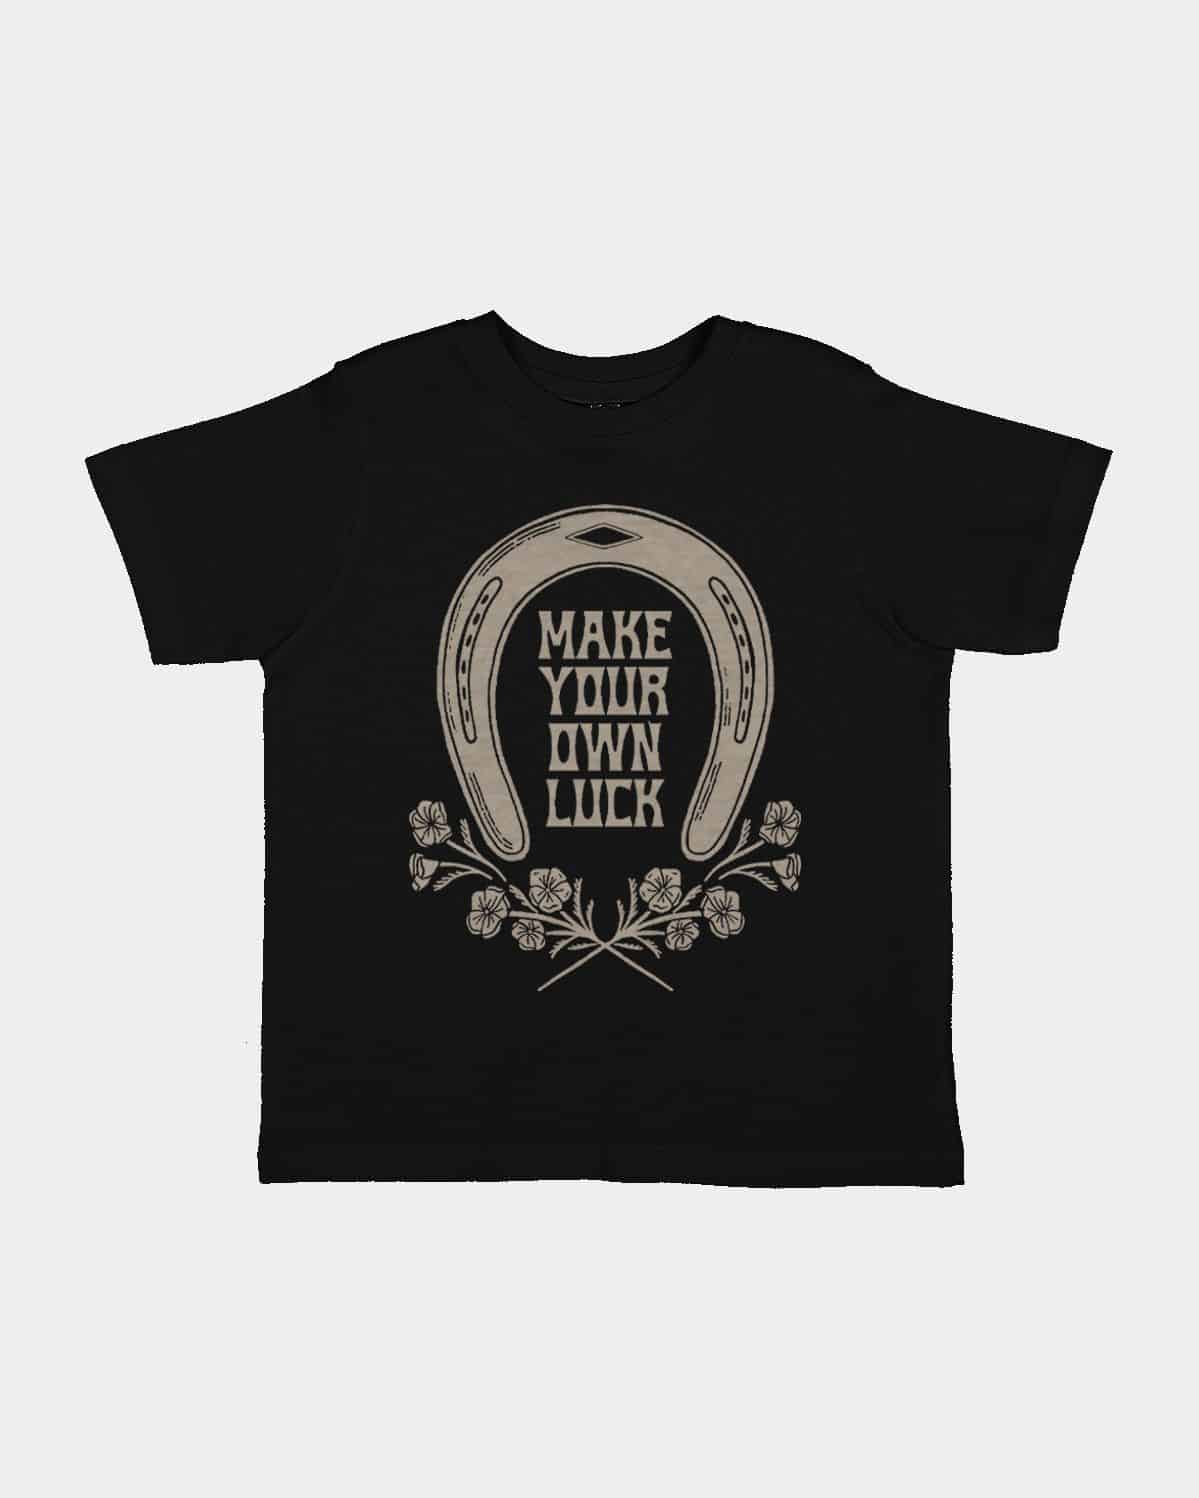 Make Your Own Luck Kids Tee